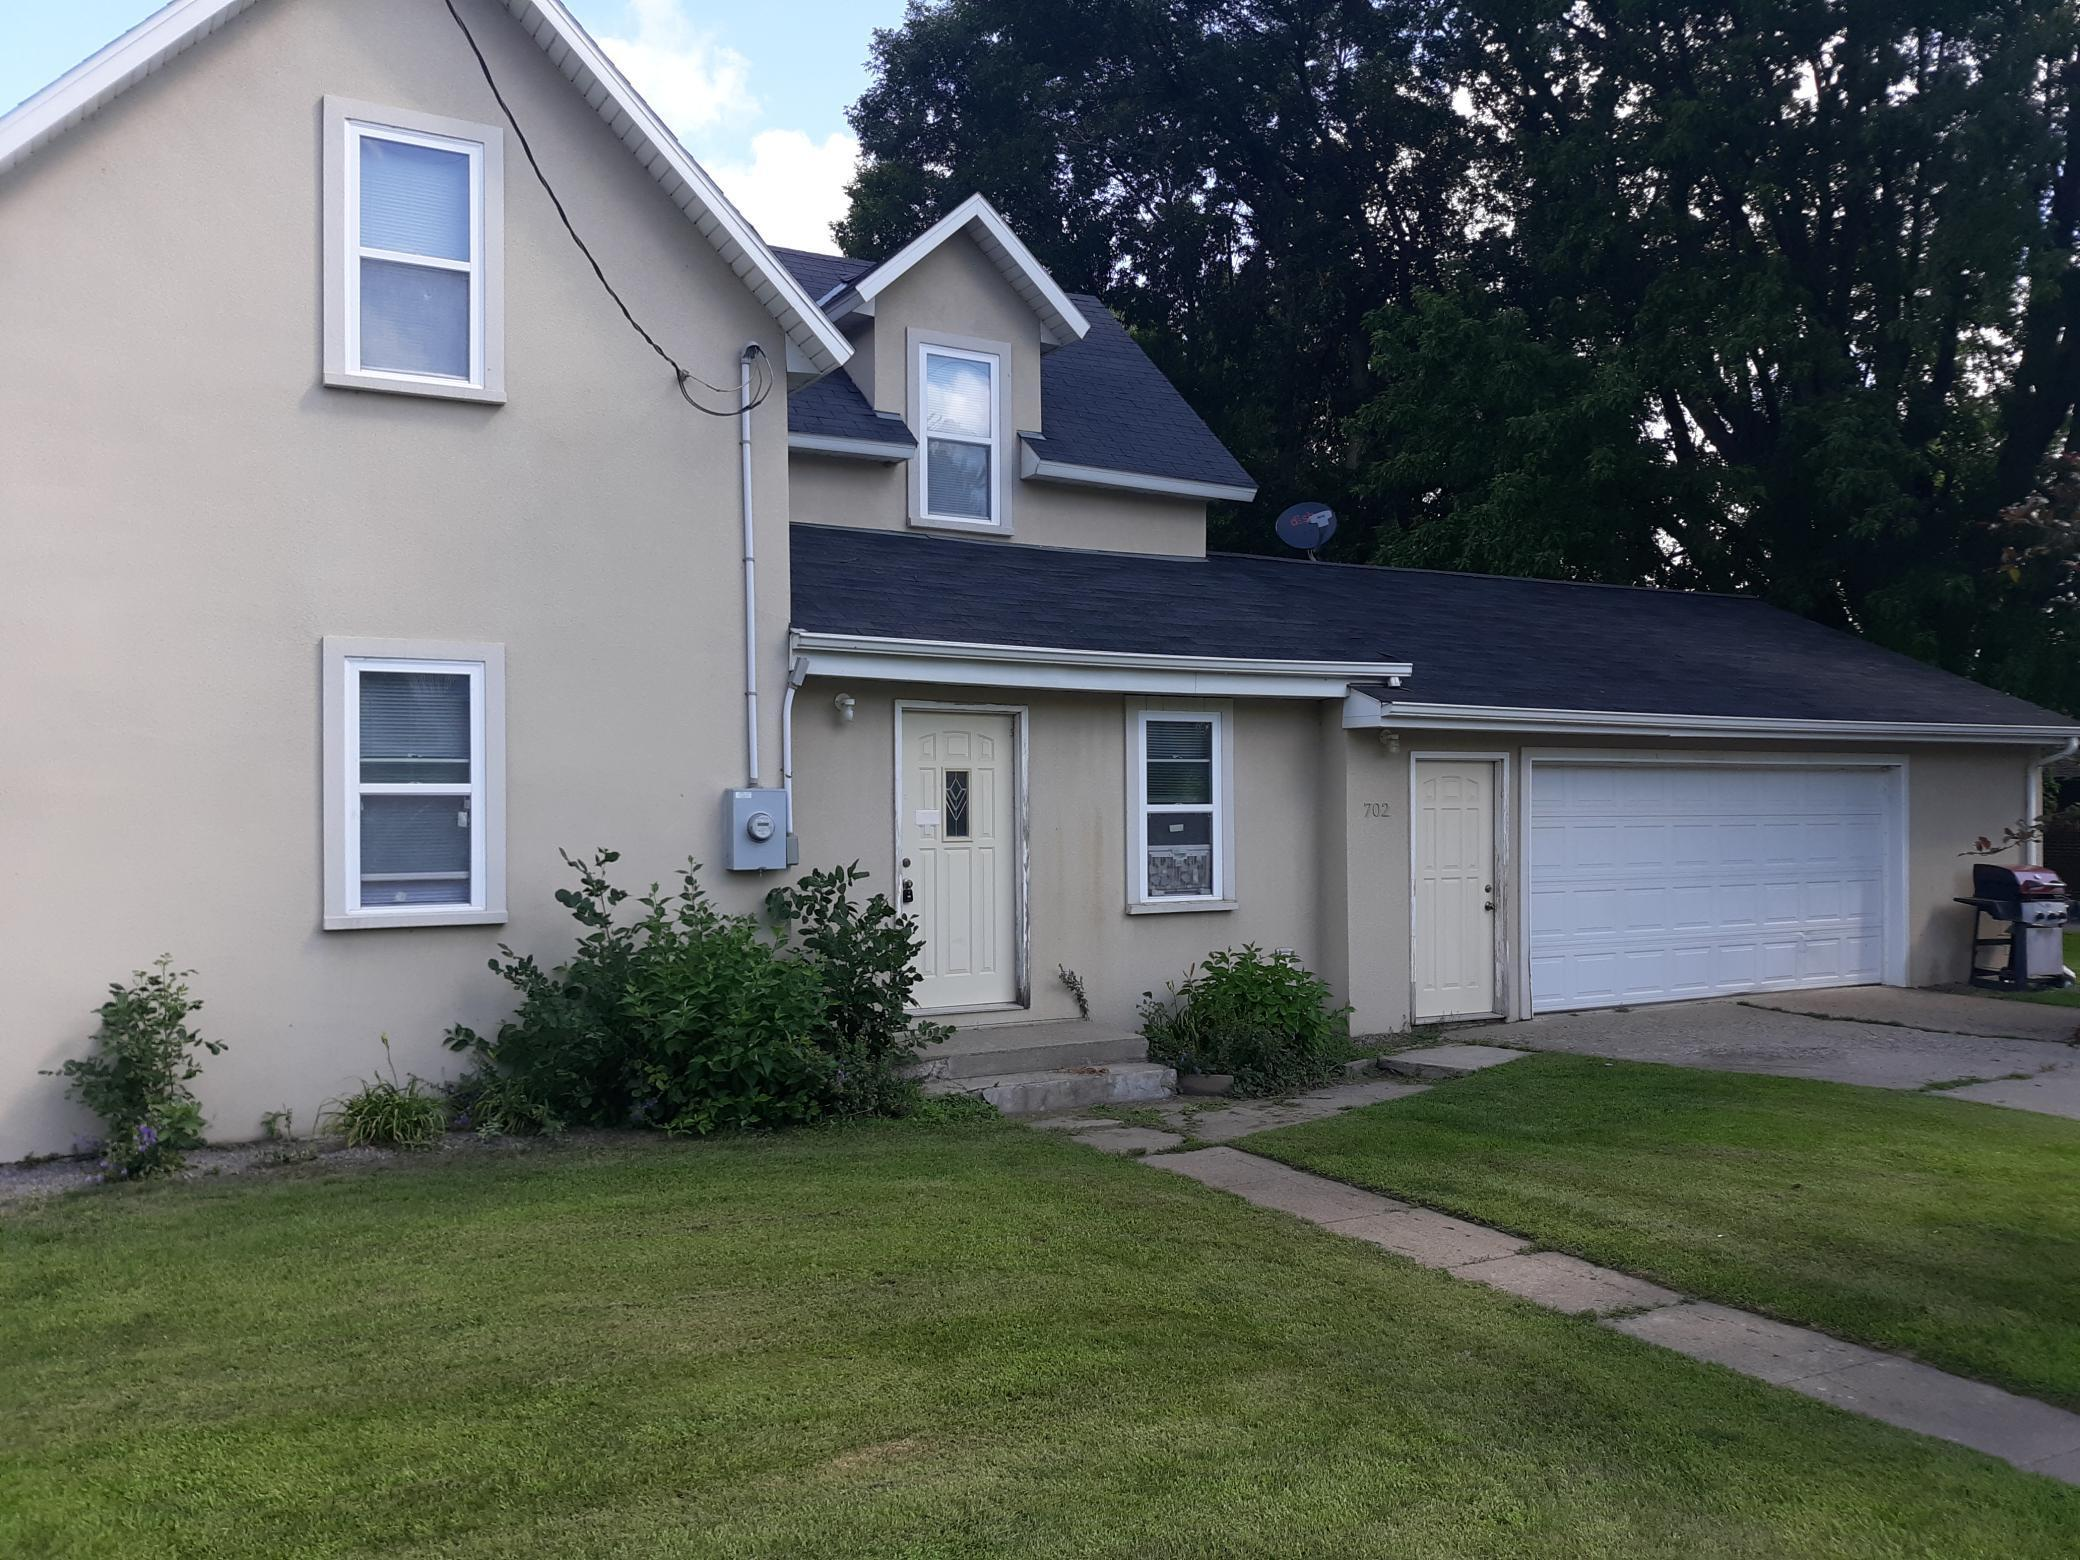 702 1st Avenue Property Photo - Elrosa, MN real estate listing